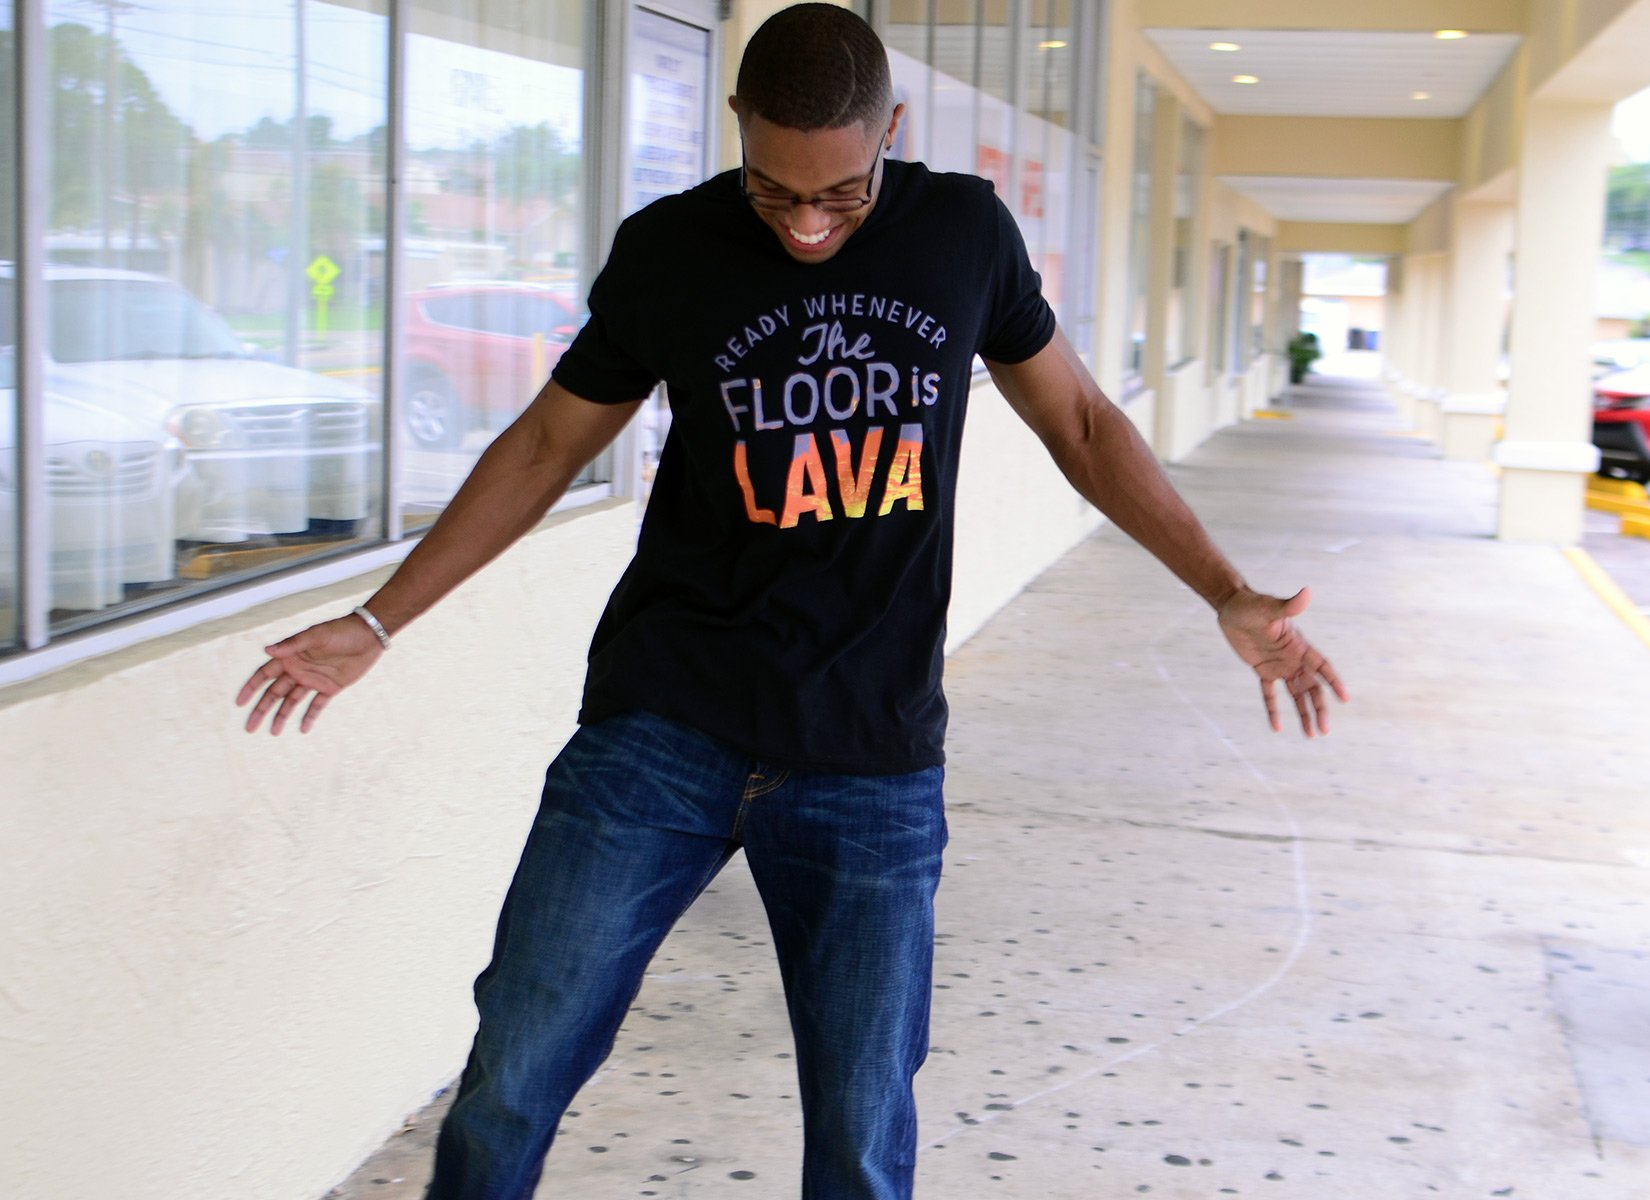 The Floor Is Lava on Mens T-Shirt